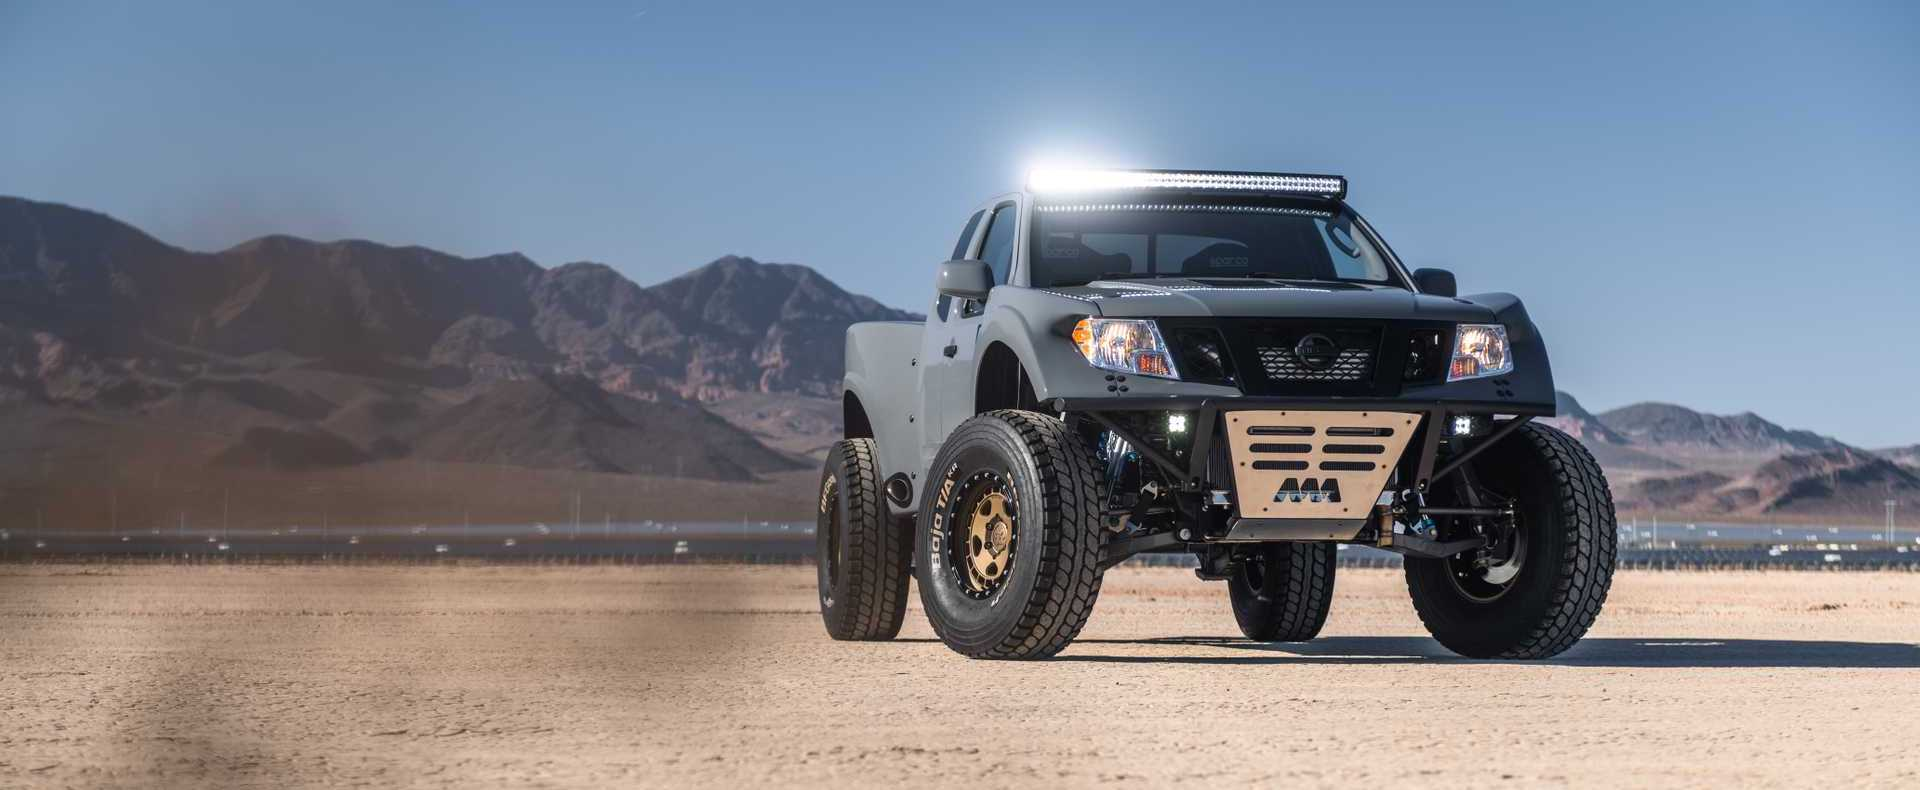 Nissan Frontier Desert Runner Debuts To Conquer Any Dune